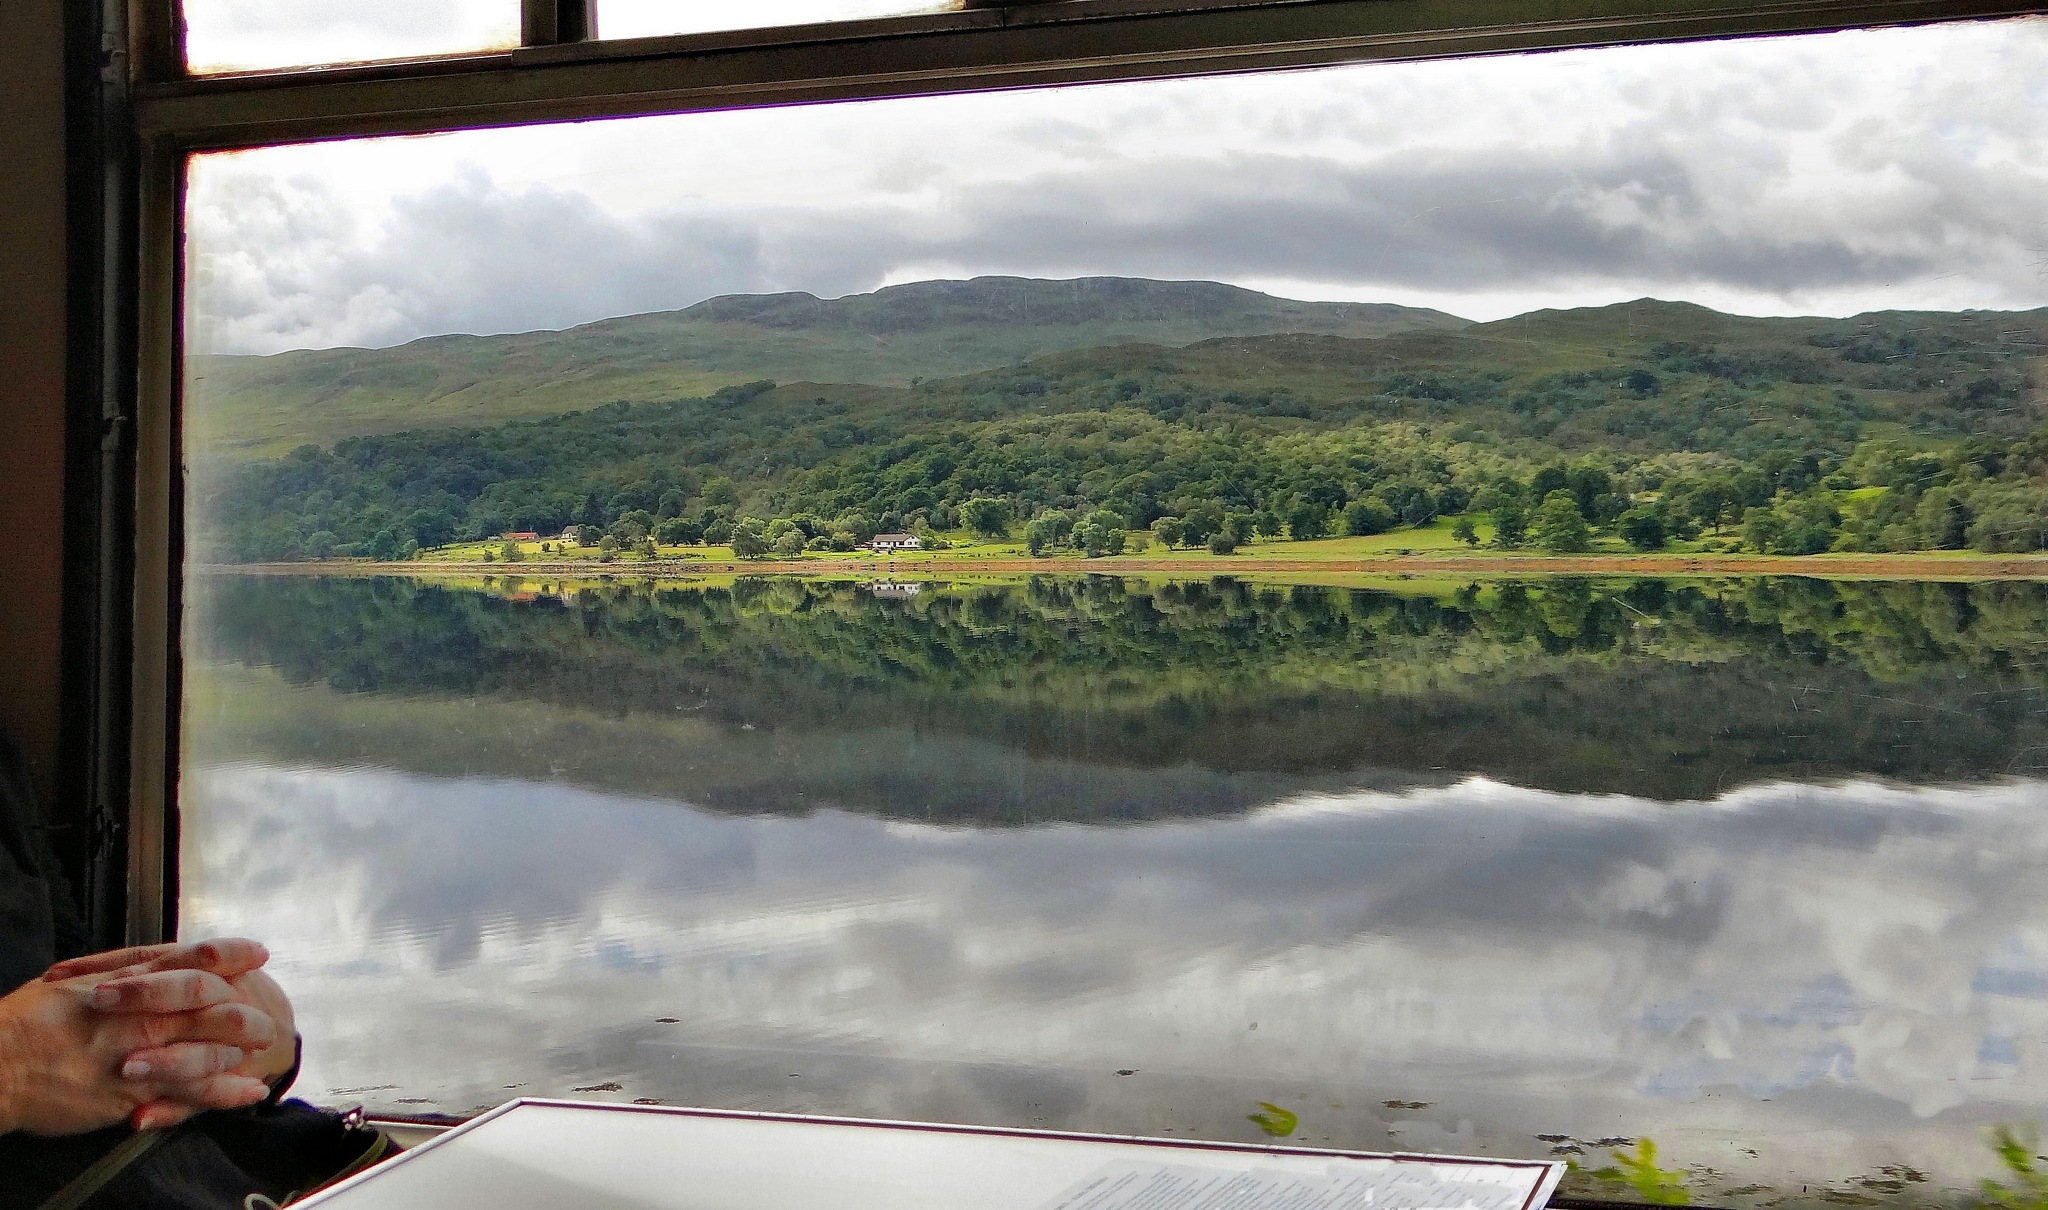 photos in Caledonia in search of the Loch Ness Monster by Mariano Arizzi Novelli